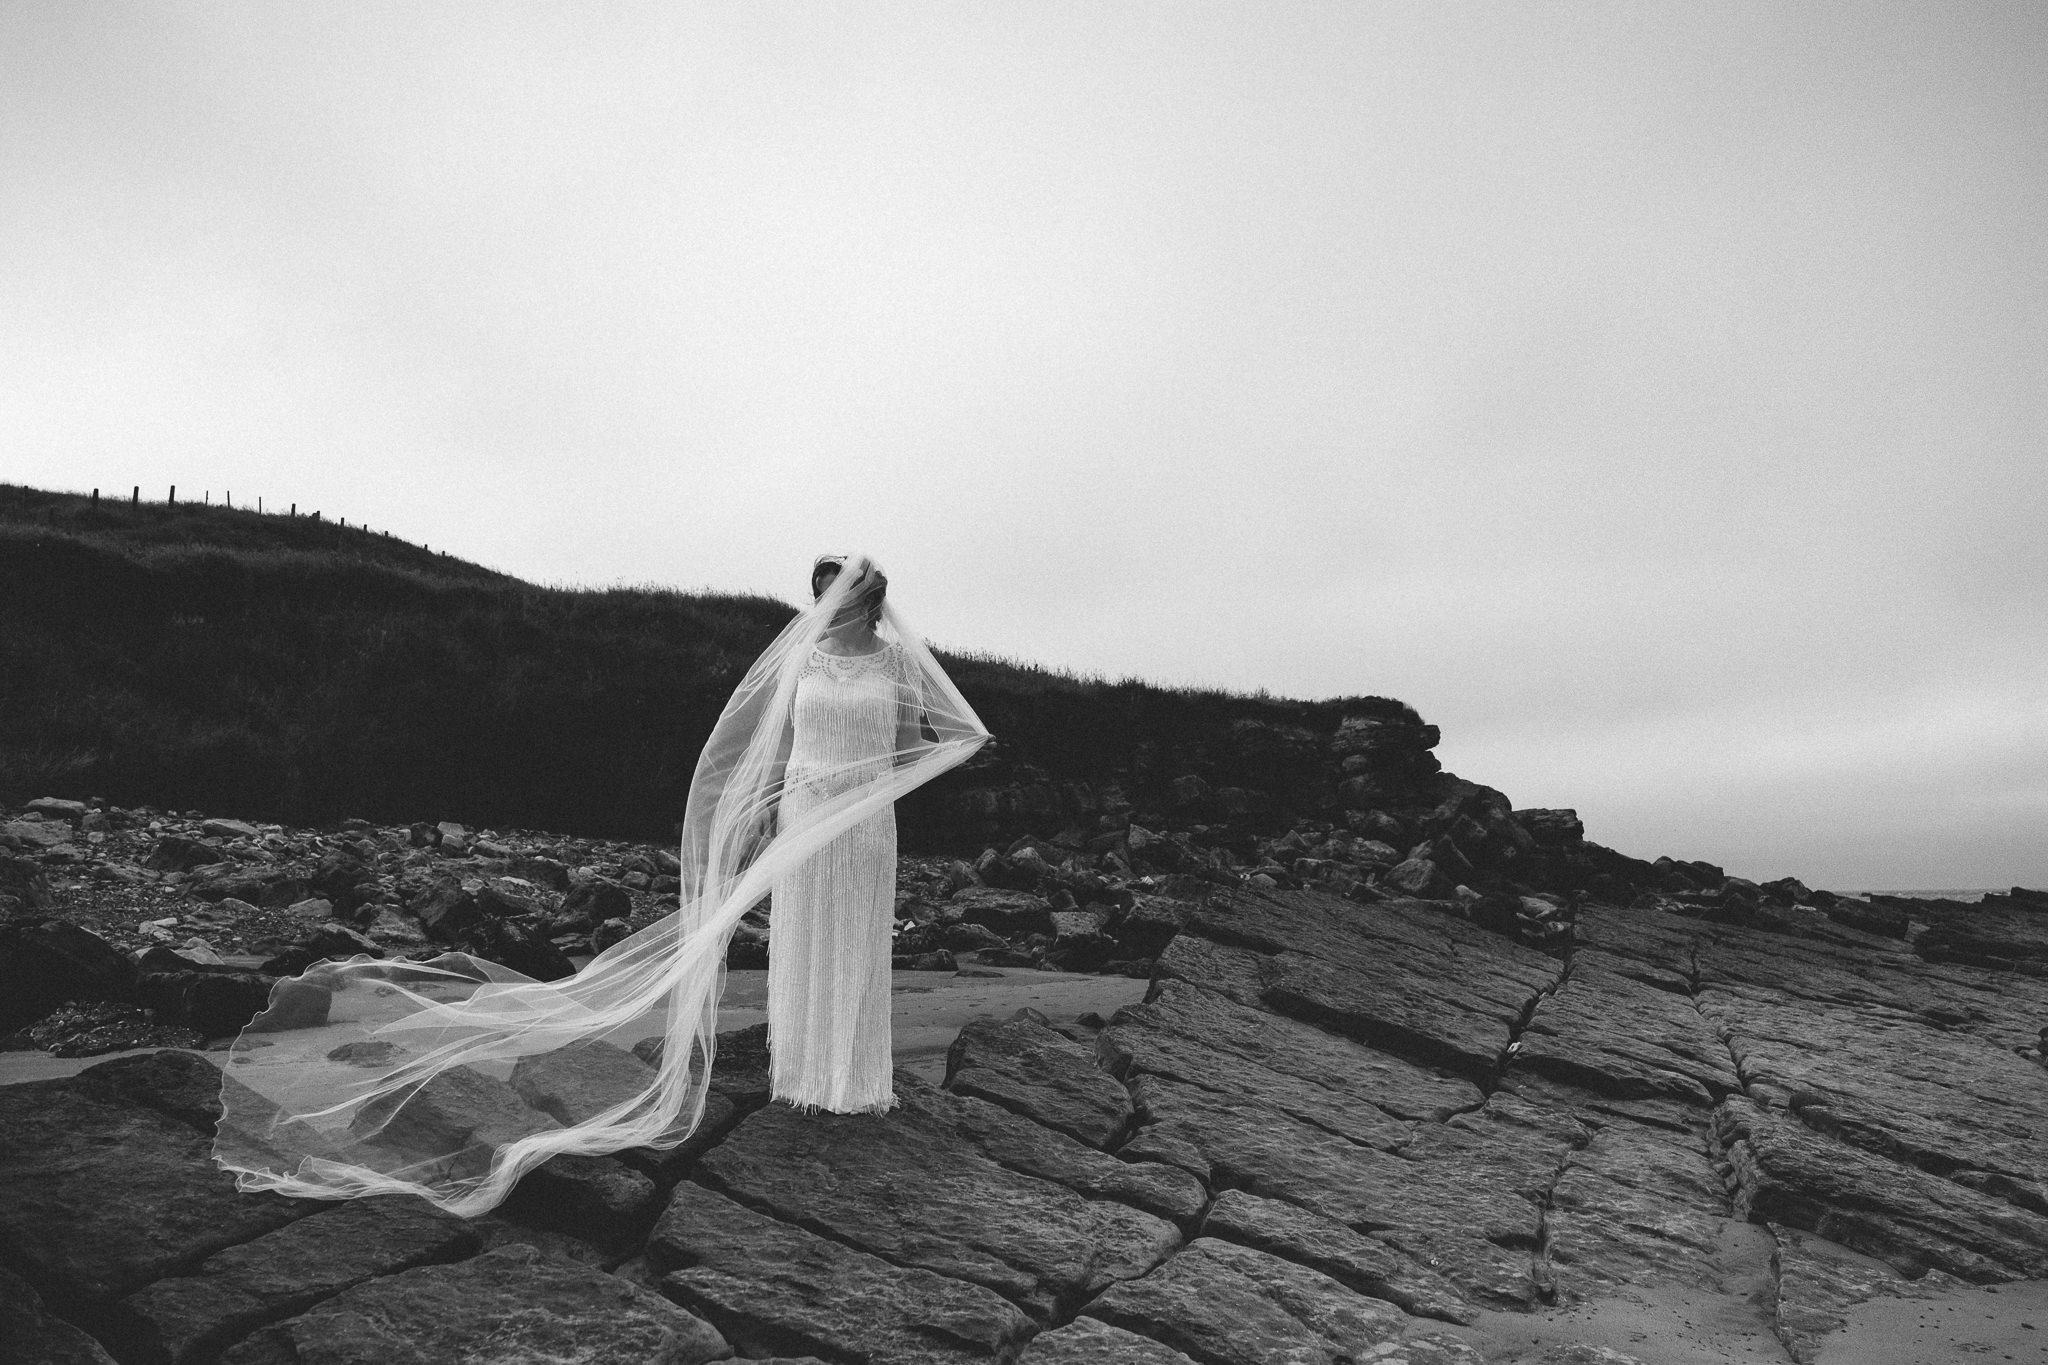 Black and white photo of the bride standing on rocks while her veil blows around her